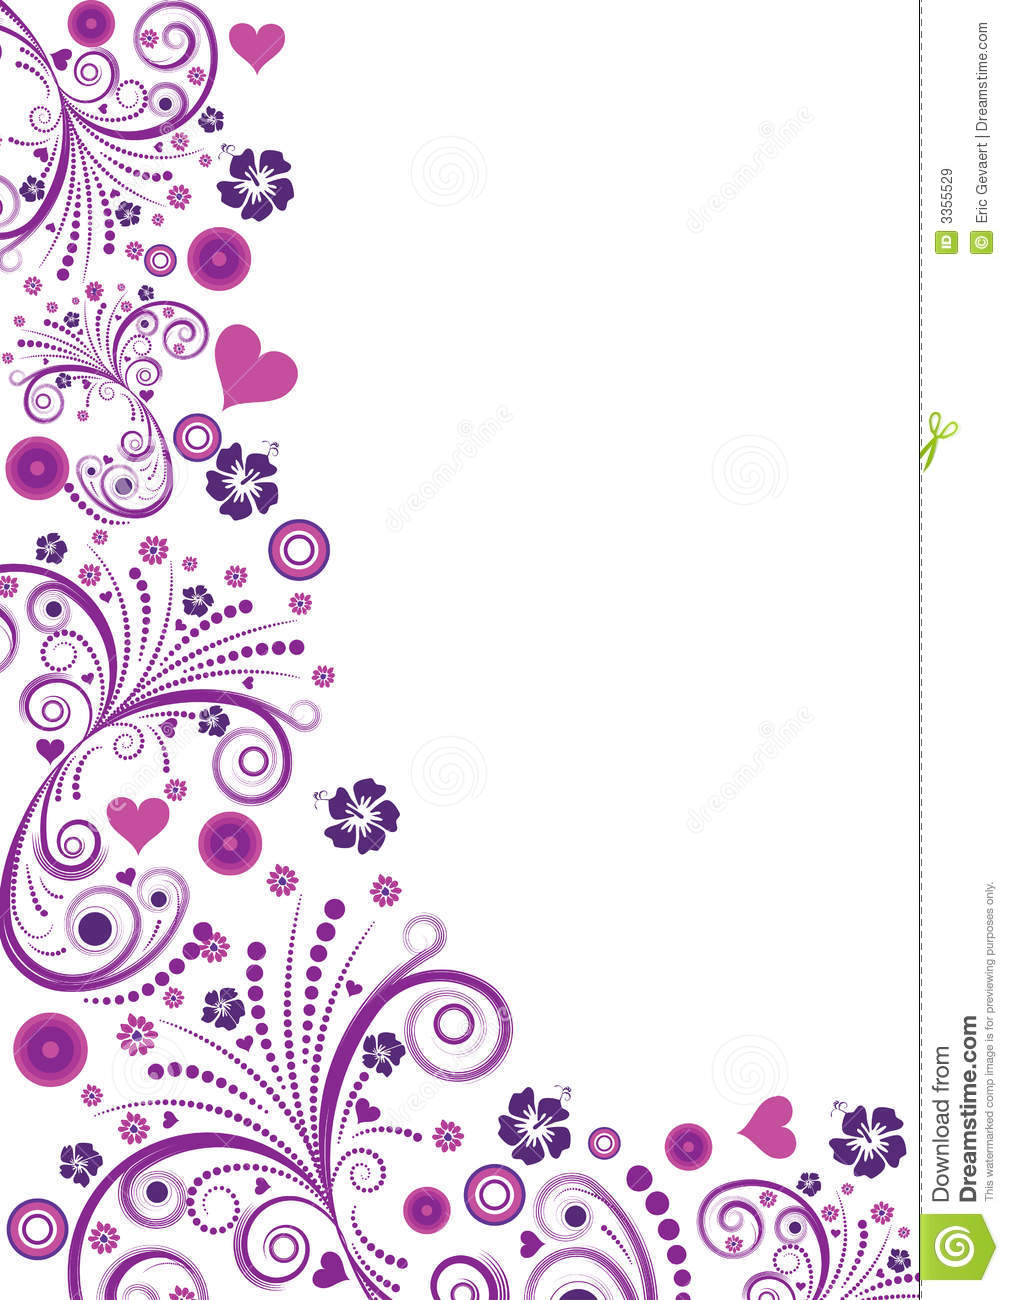 20 Floral Border Vector Images Free Floral Vector